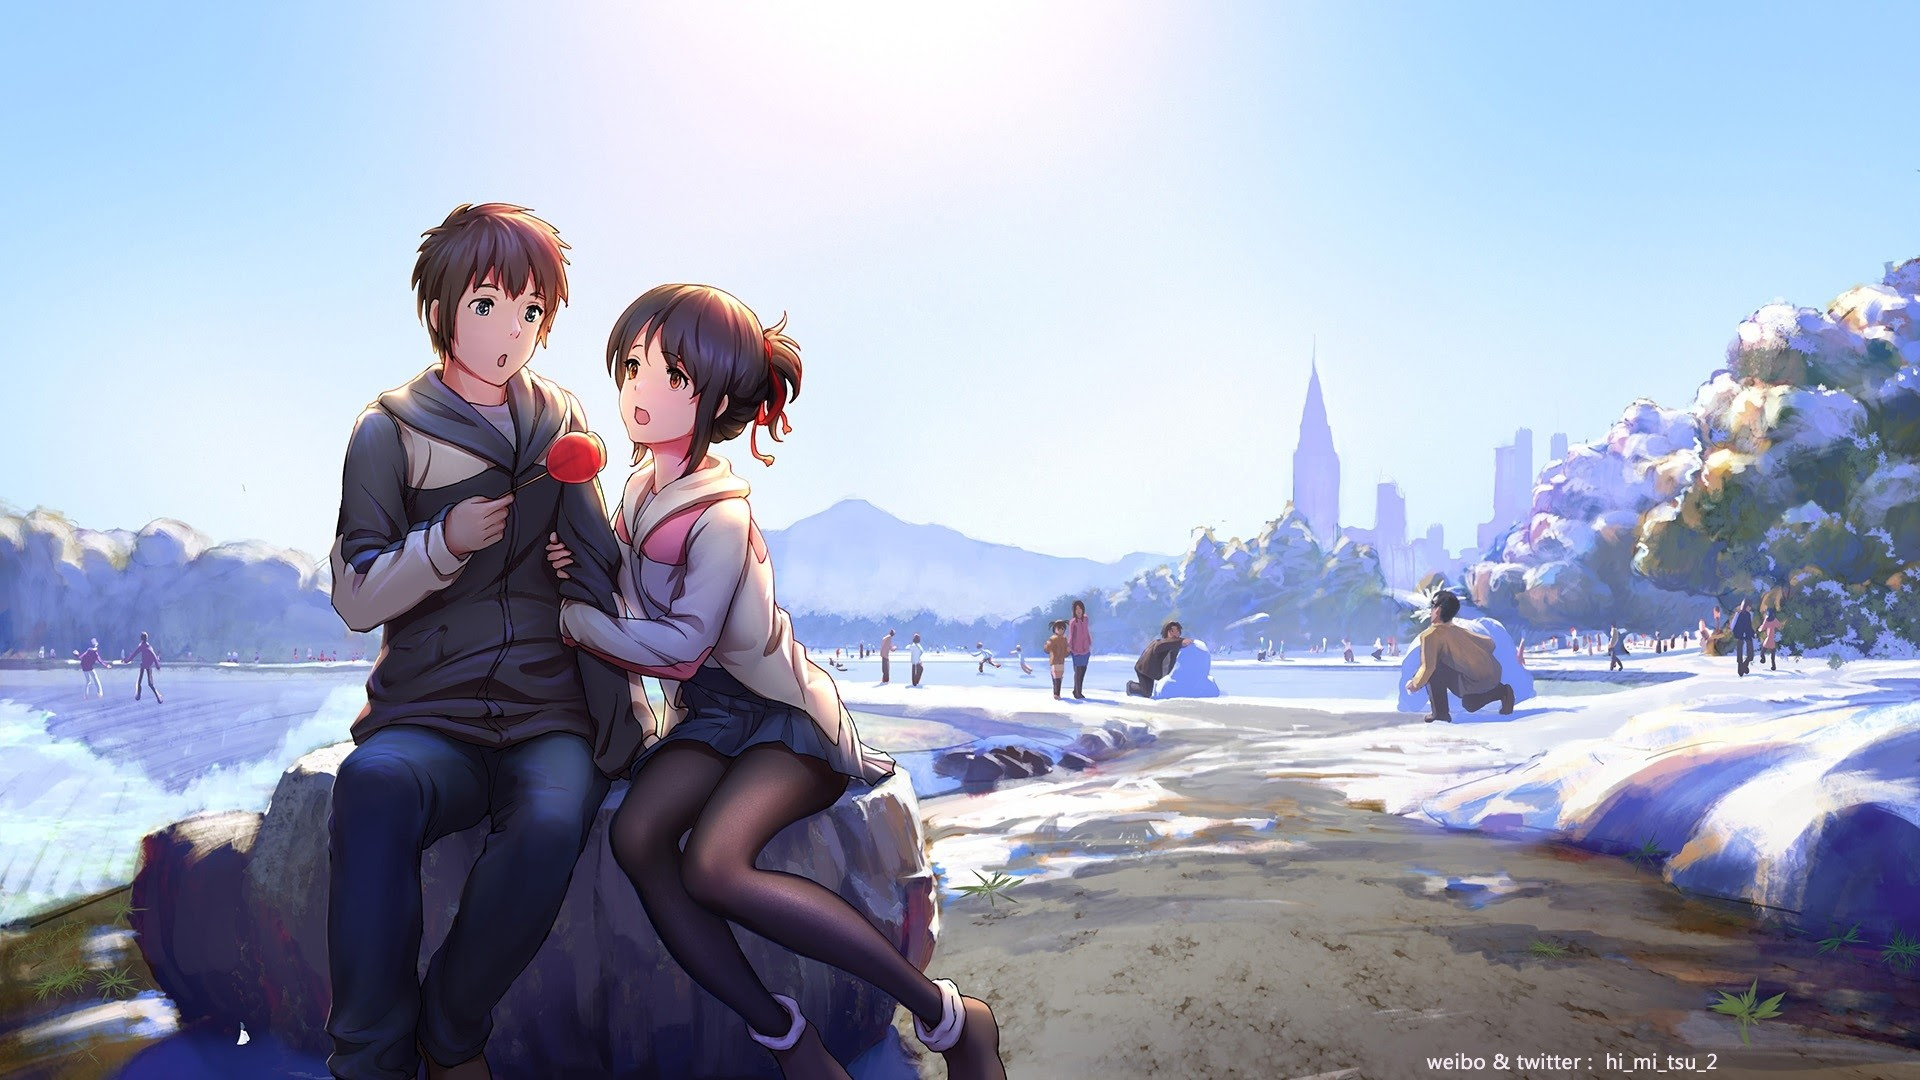 Wallpaper Anime Kimi No Na Wa Hd